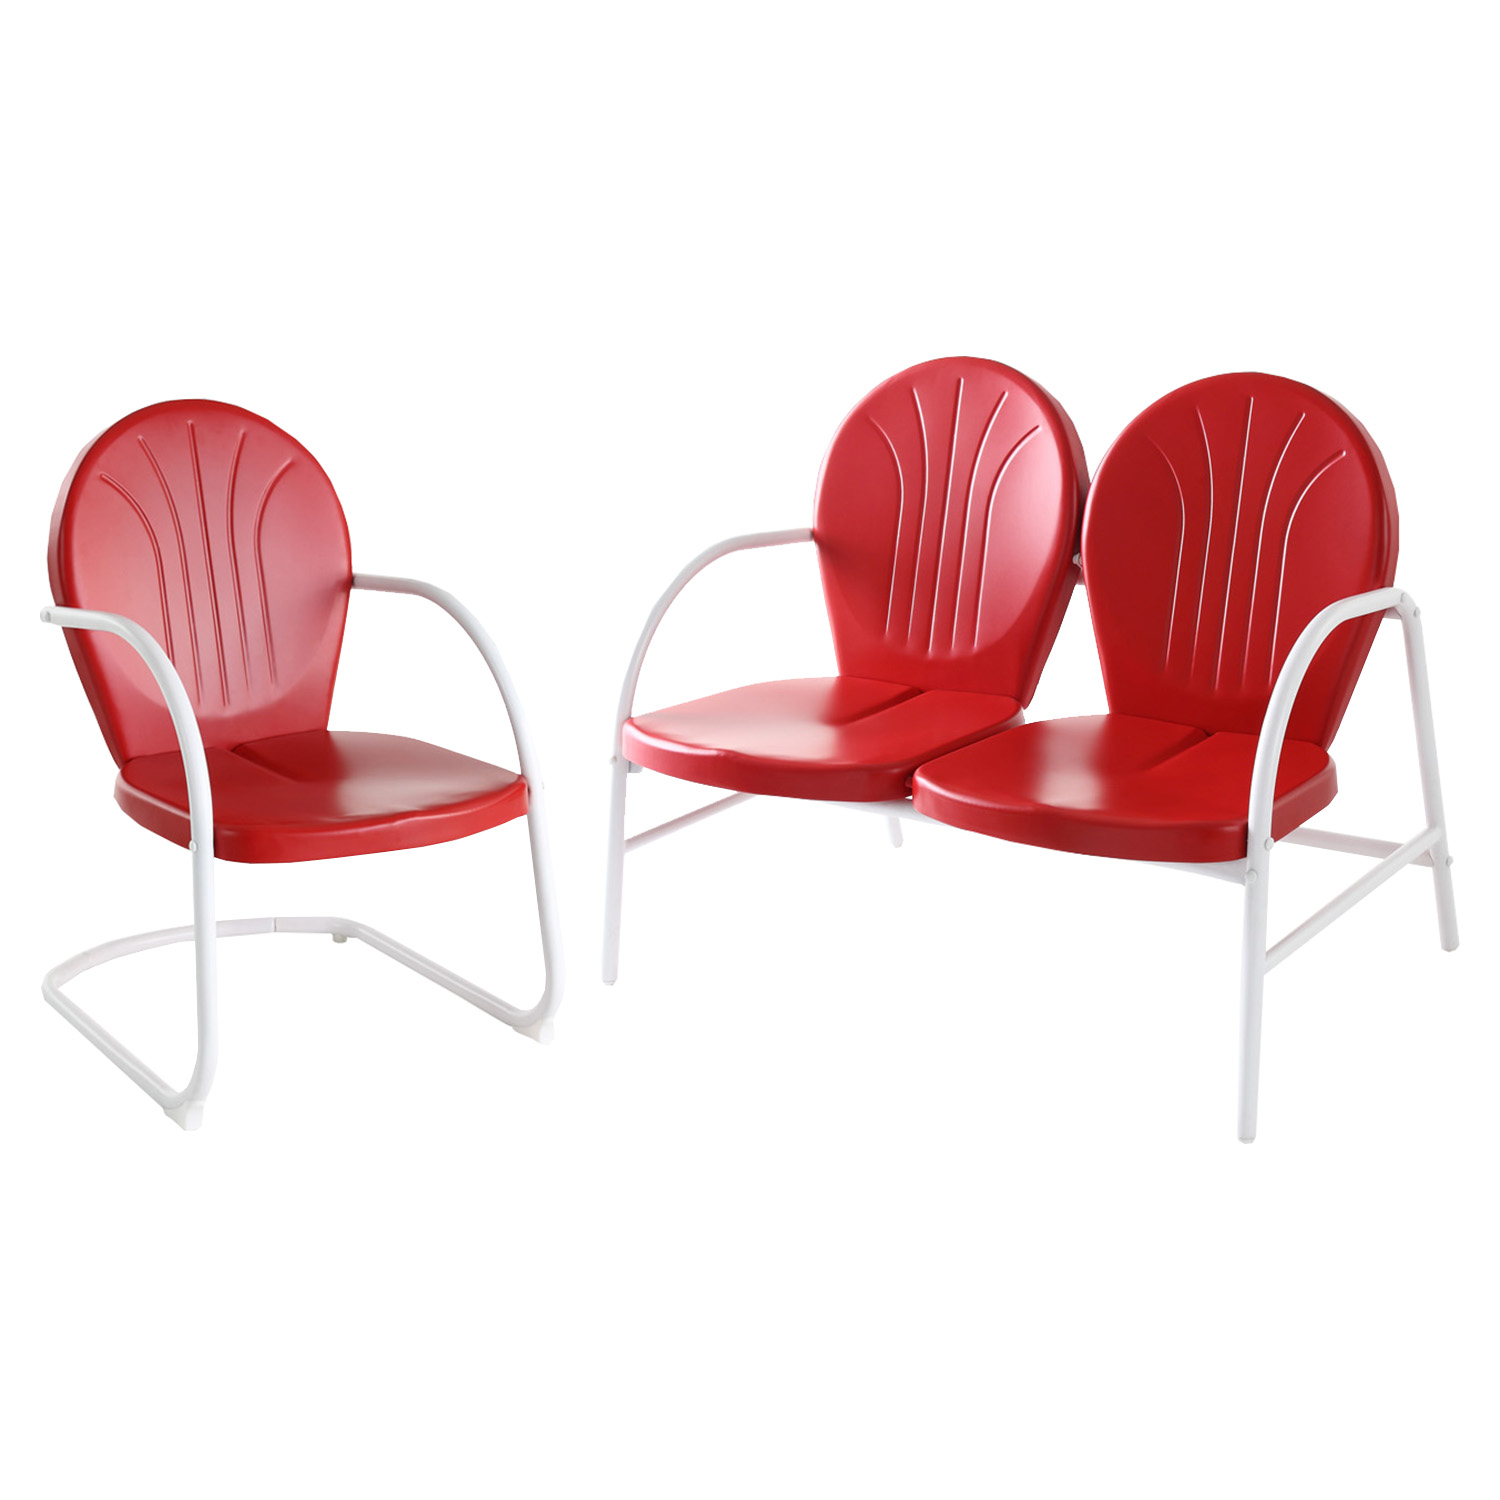 Griffith 2-Piece Metal Outdoor Conversation Seating Set - Red - CROS-KO10005RE